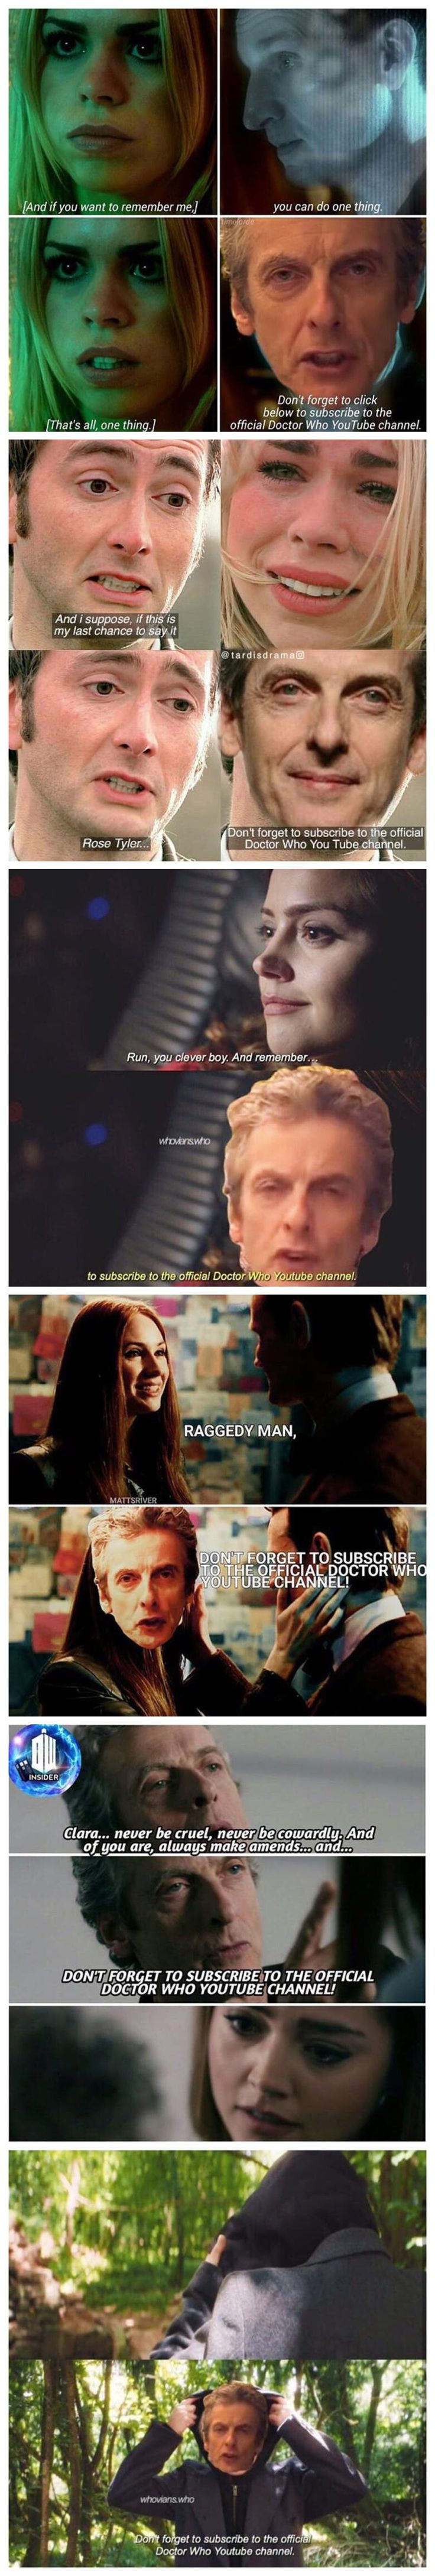 Don't forget to subscribe to the official Doctor Who YouTube channel! Doctor who meme. Images not mine.